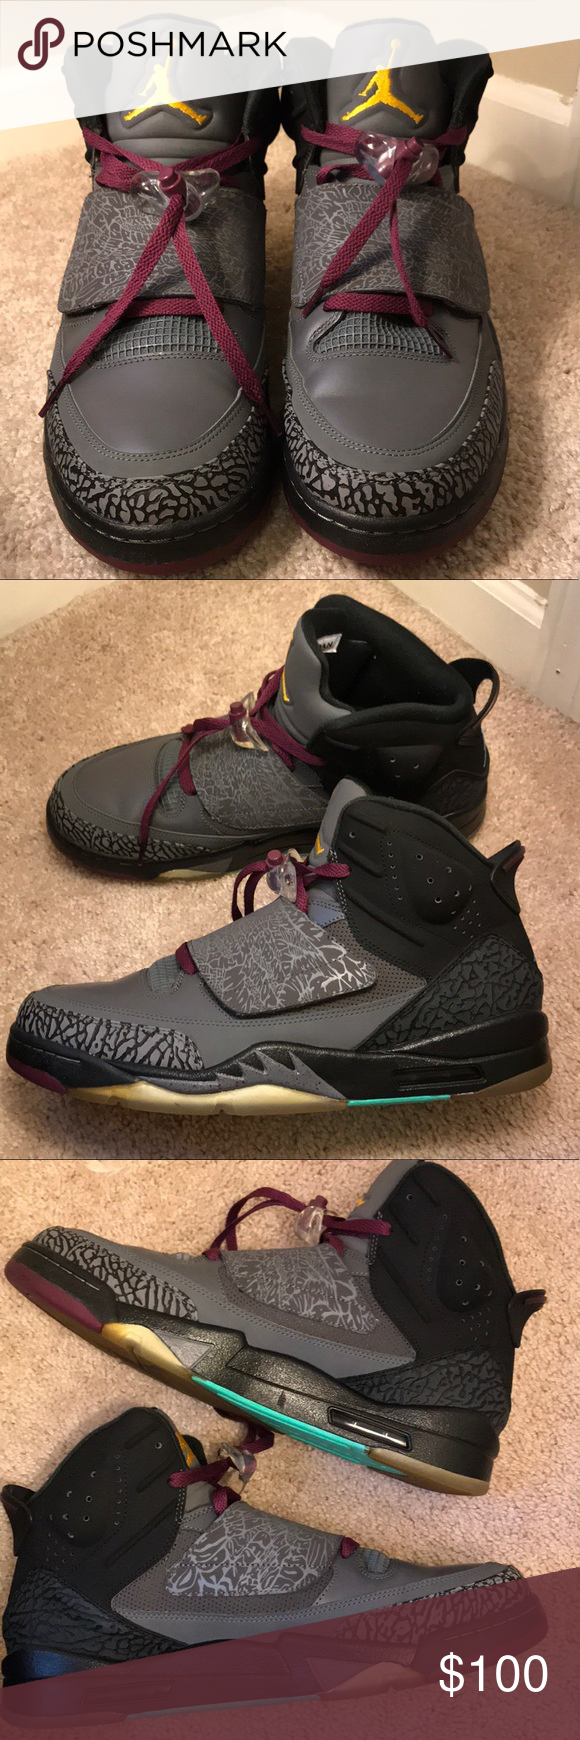 """5b38dd81b0456e Air Jordan Son of Mars """"Bordeaux"""" size 12.5 Yellowing at sole due to time.  Otherwise good condition. No box. Air Jordan Shoes Sneakers"""